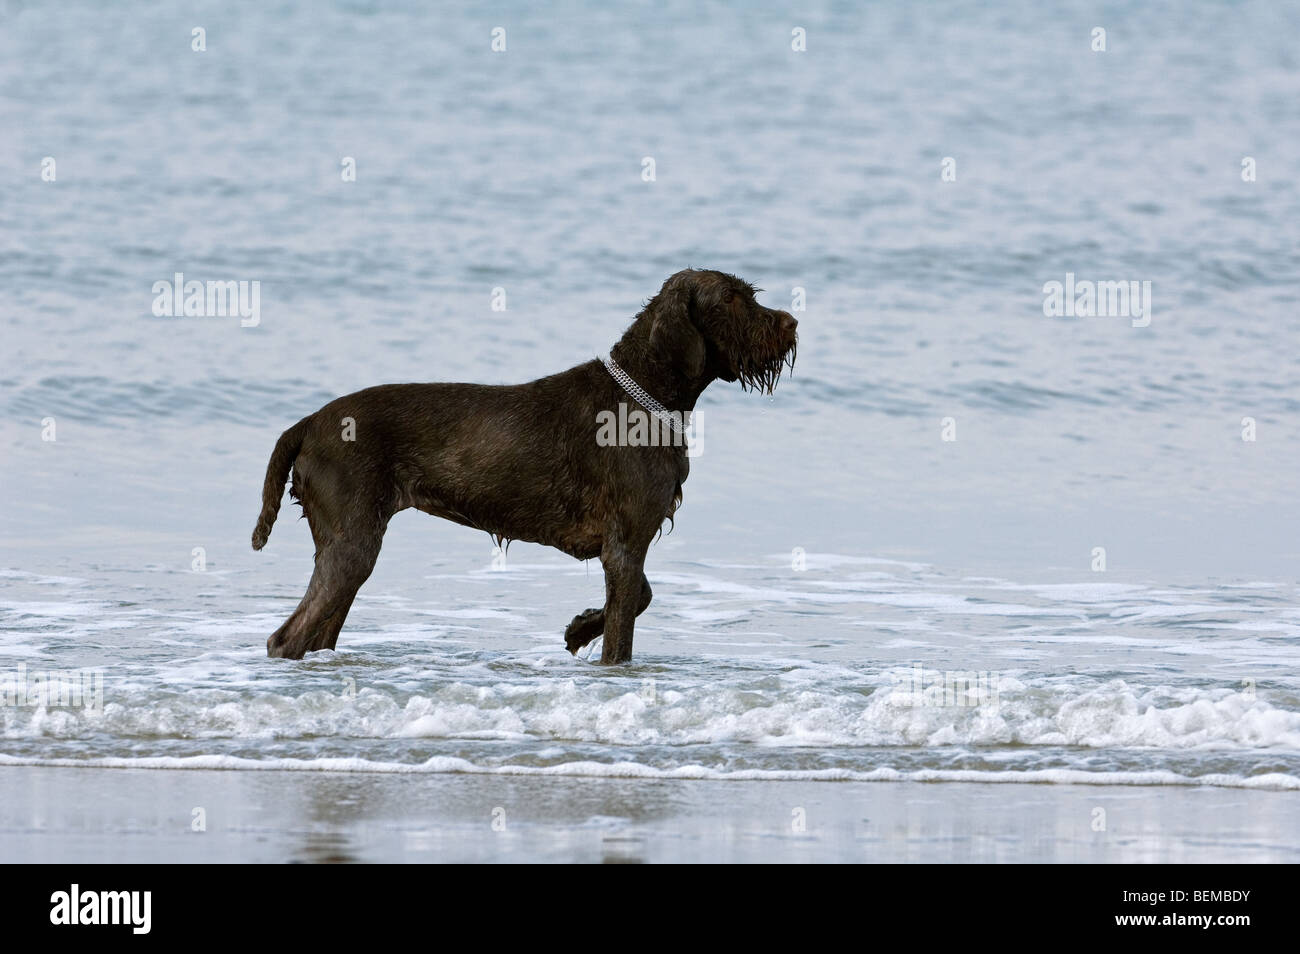 German Wirehaired Pointer Stock Photos & German Wirehaired Pointer ...